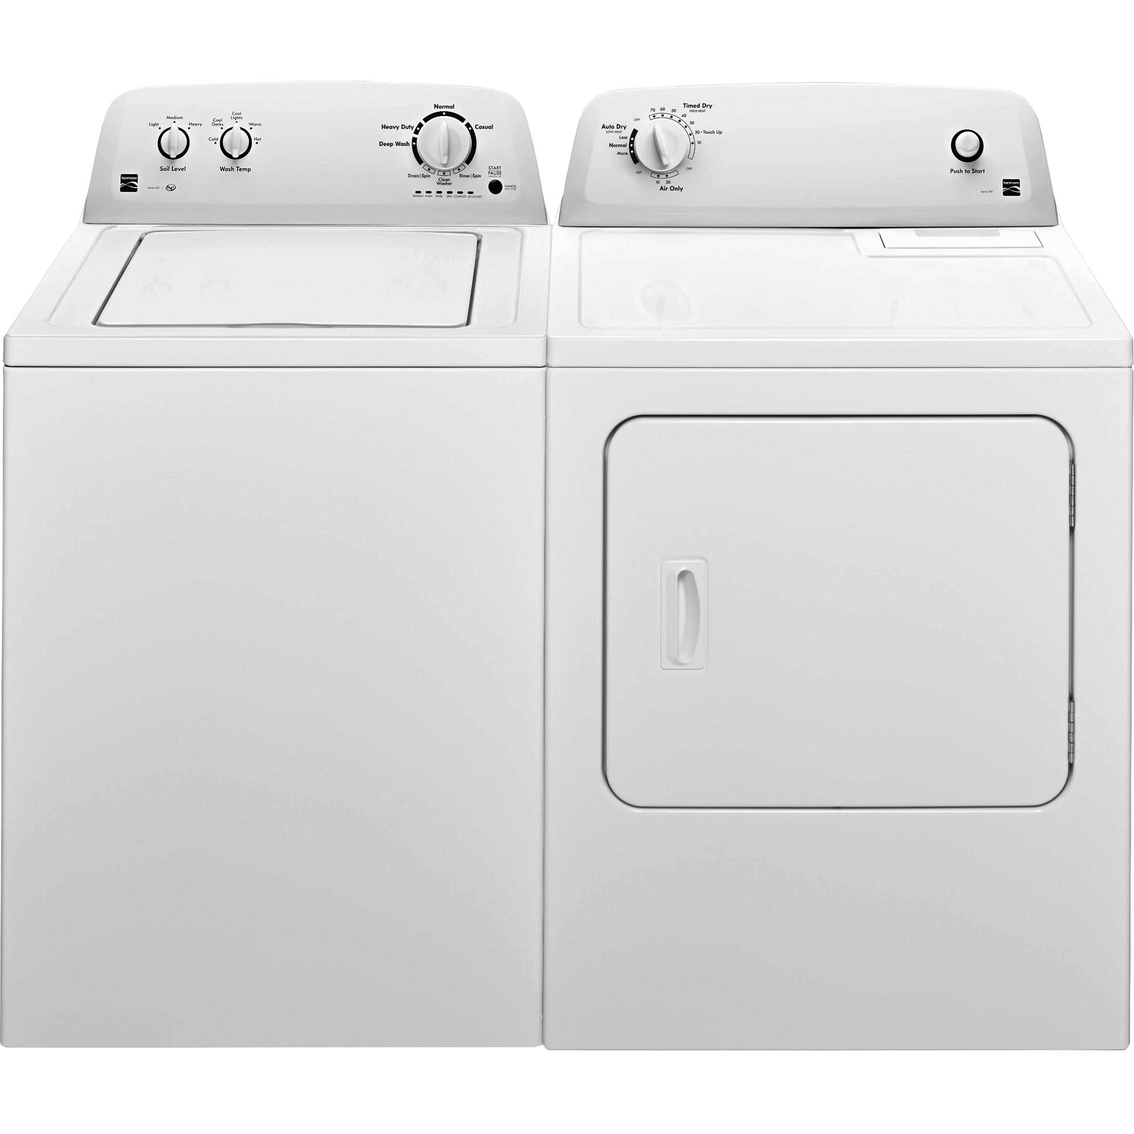 Kenmore 3 3 Cu Ft Top Load Washer 6 5 Cu Ft Electric